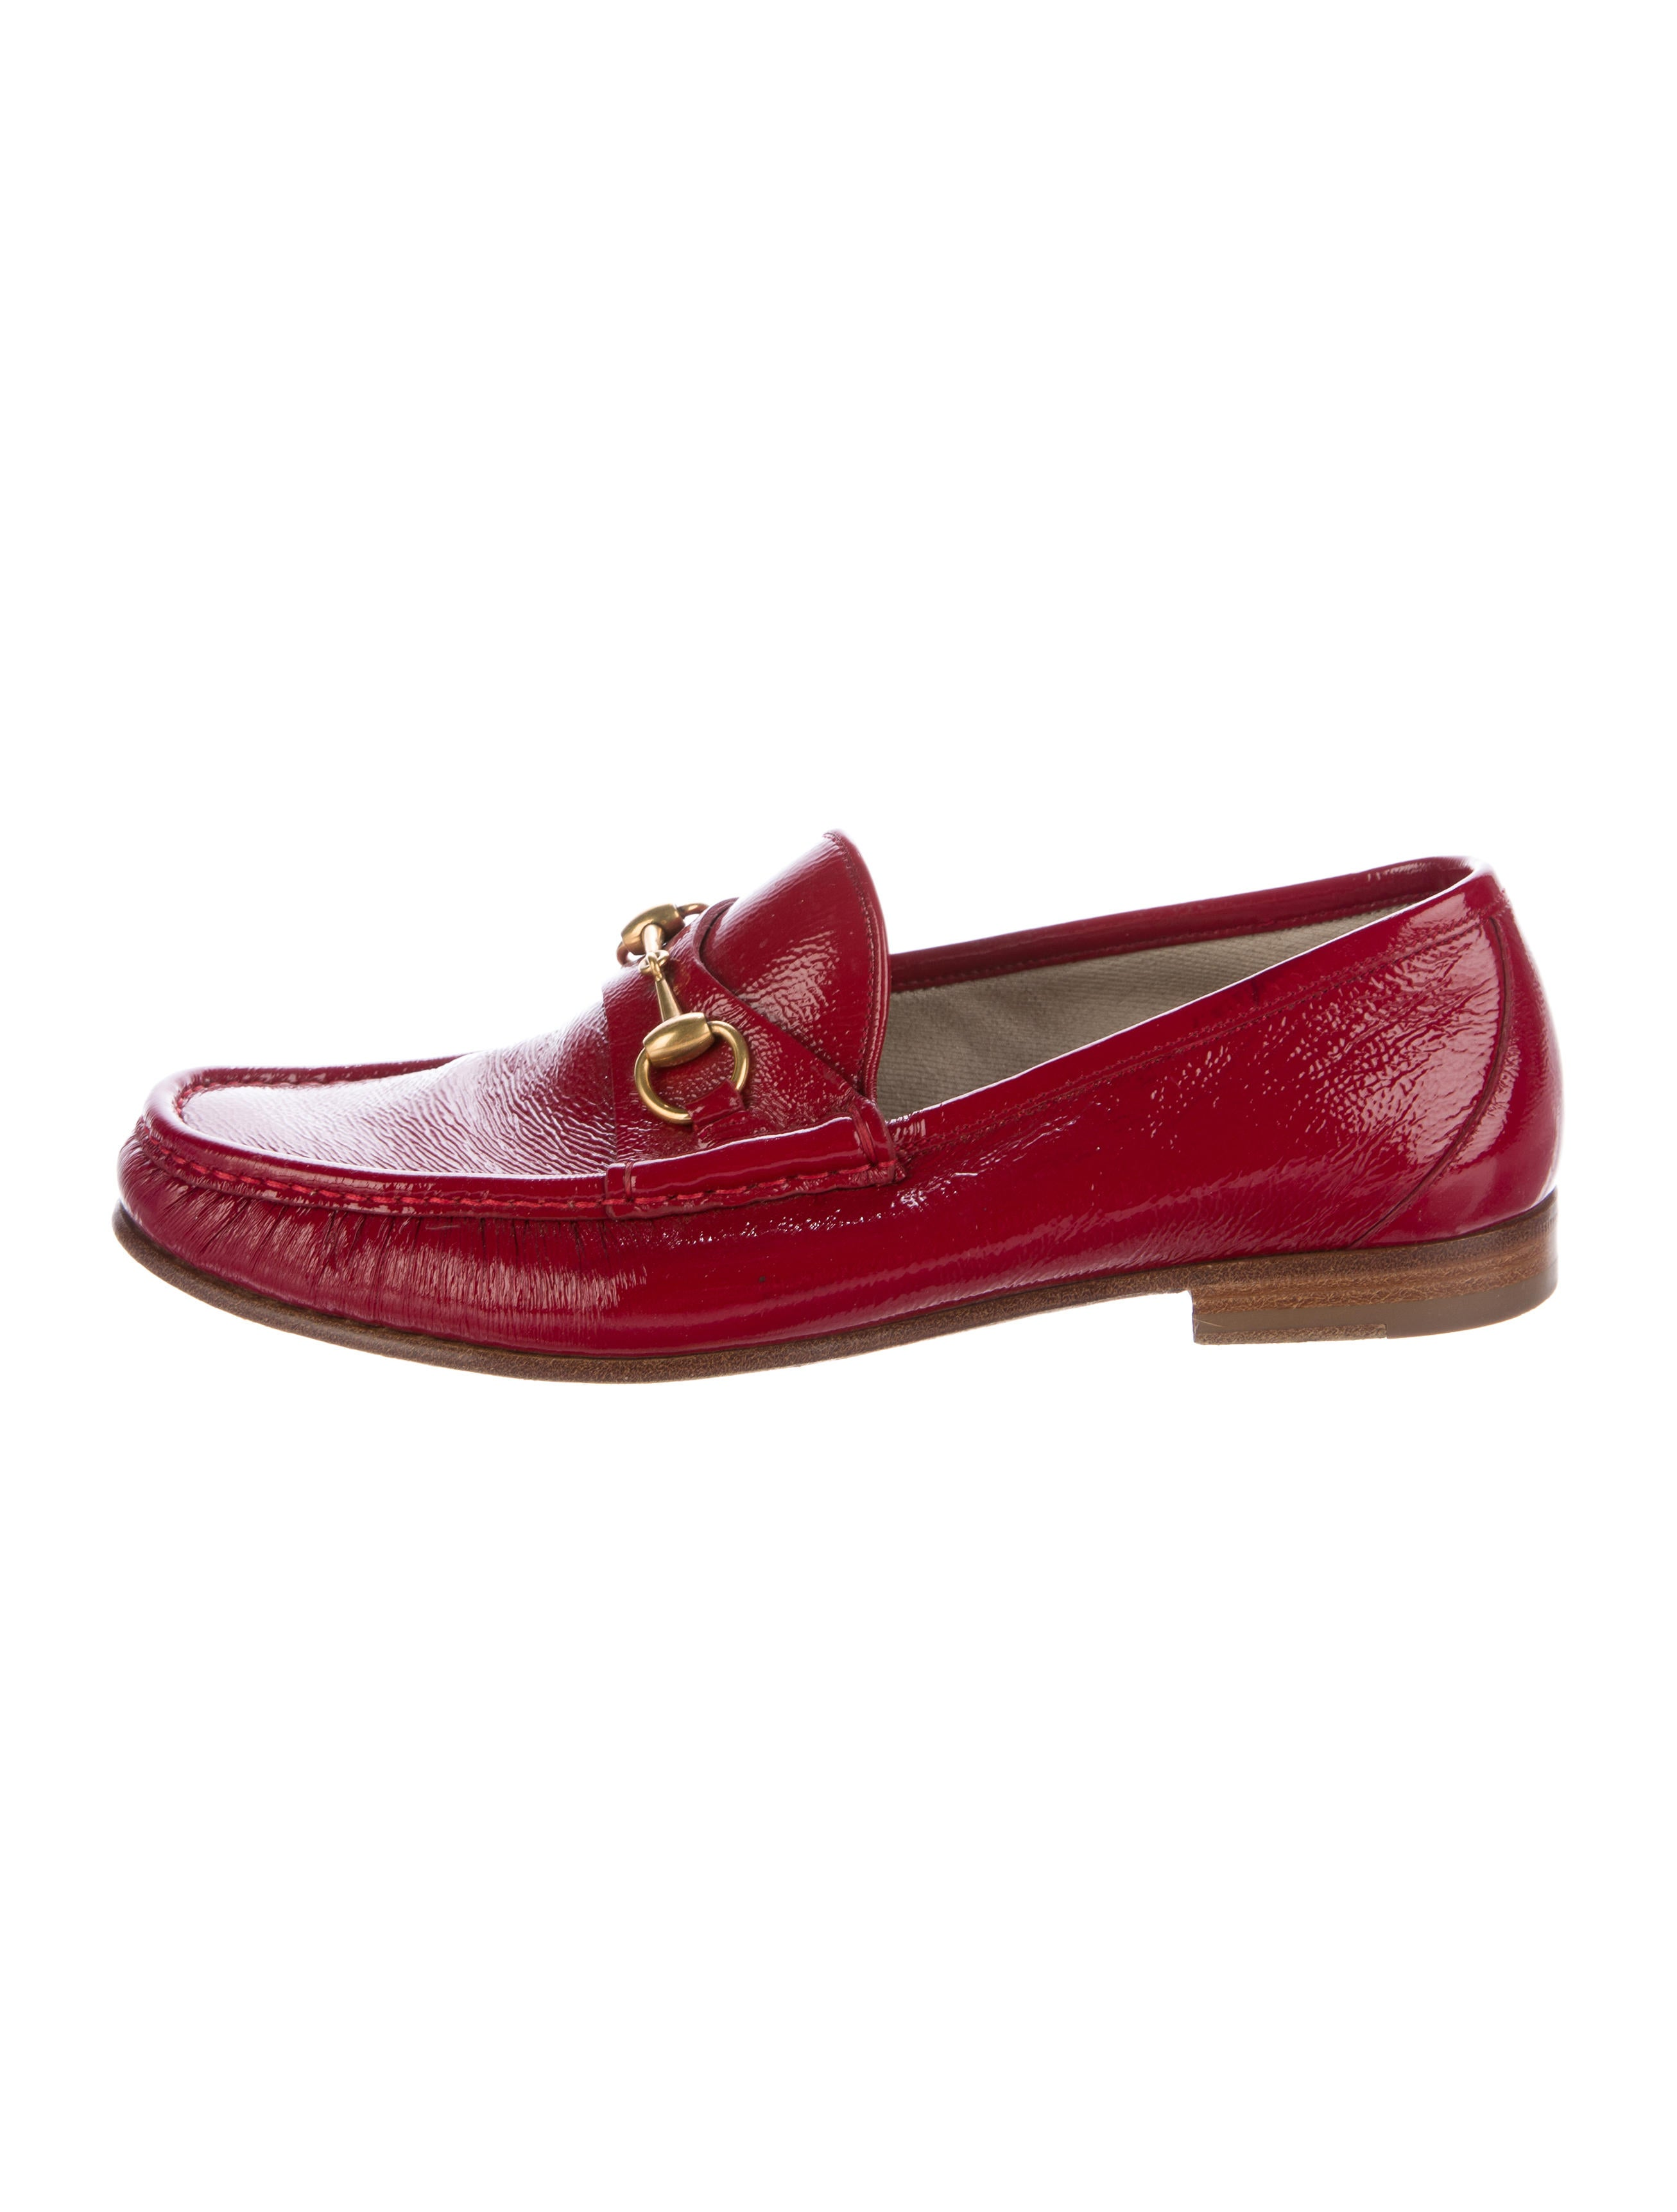 ae800ce59ca Gucci 1953 Horsebit Loafers - Shoes - GUC154207